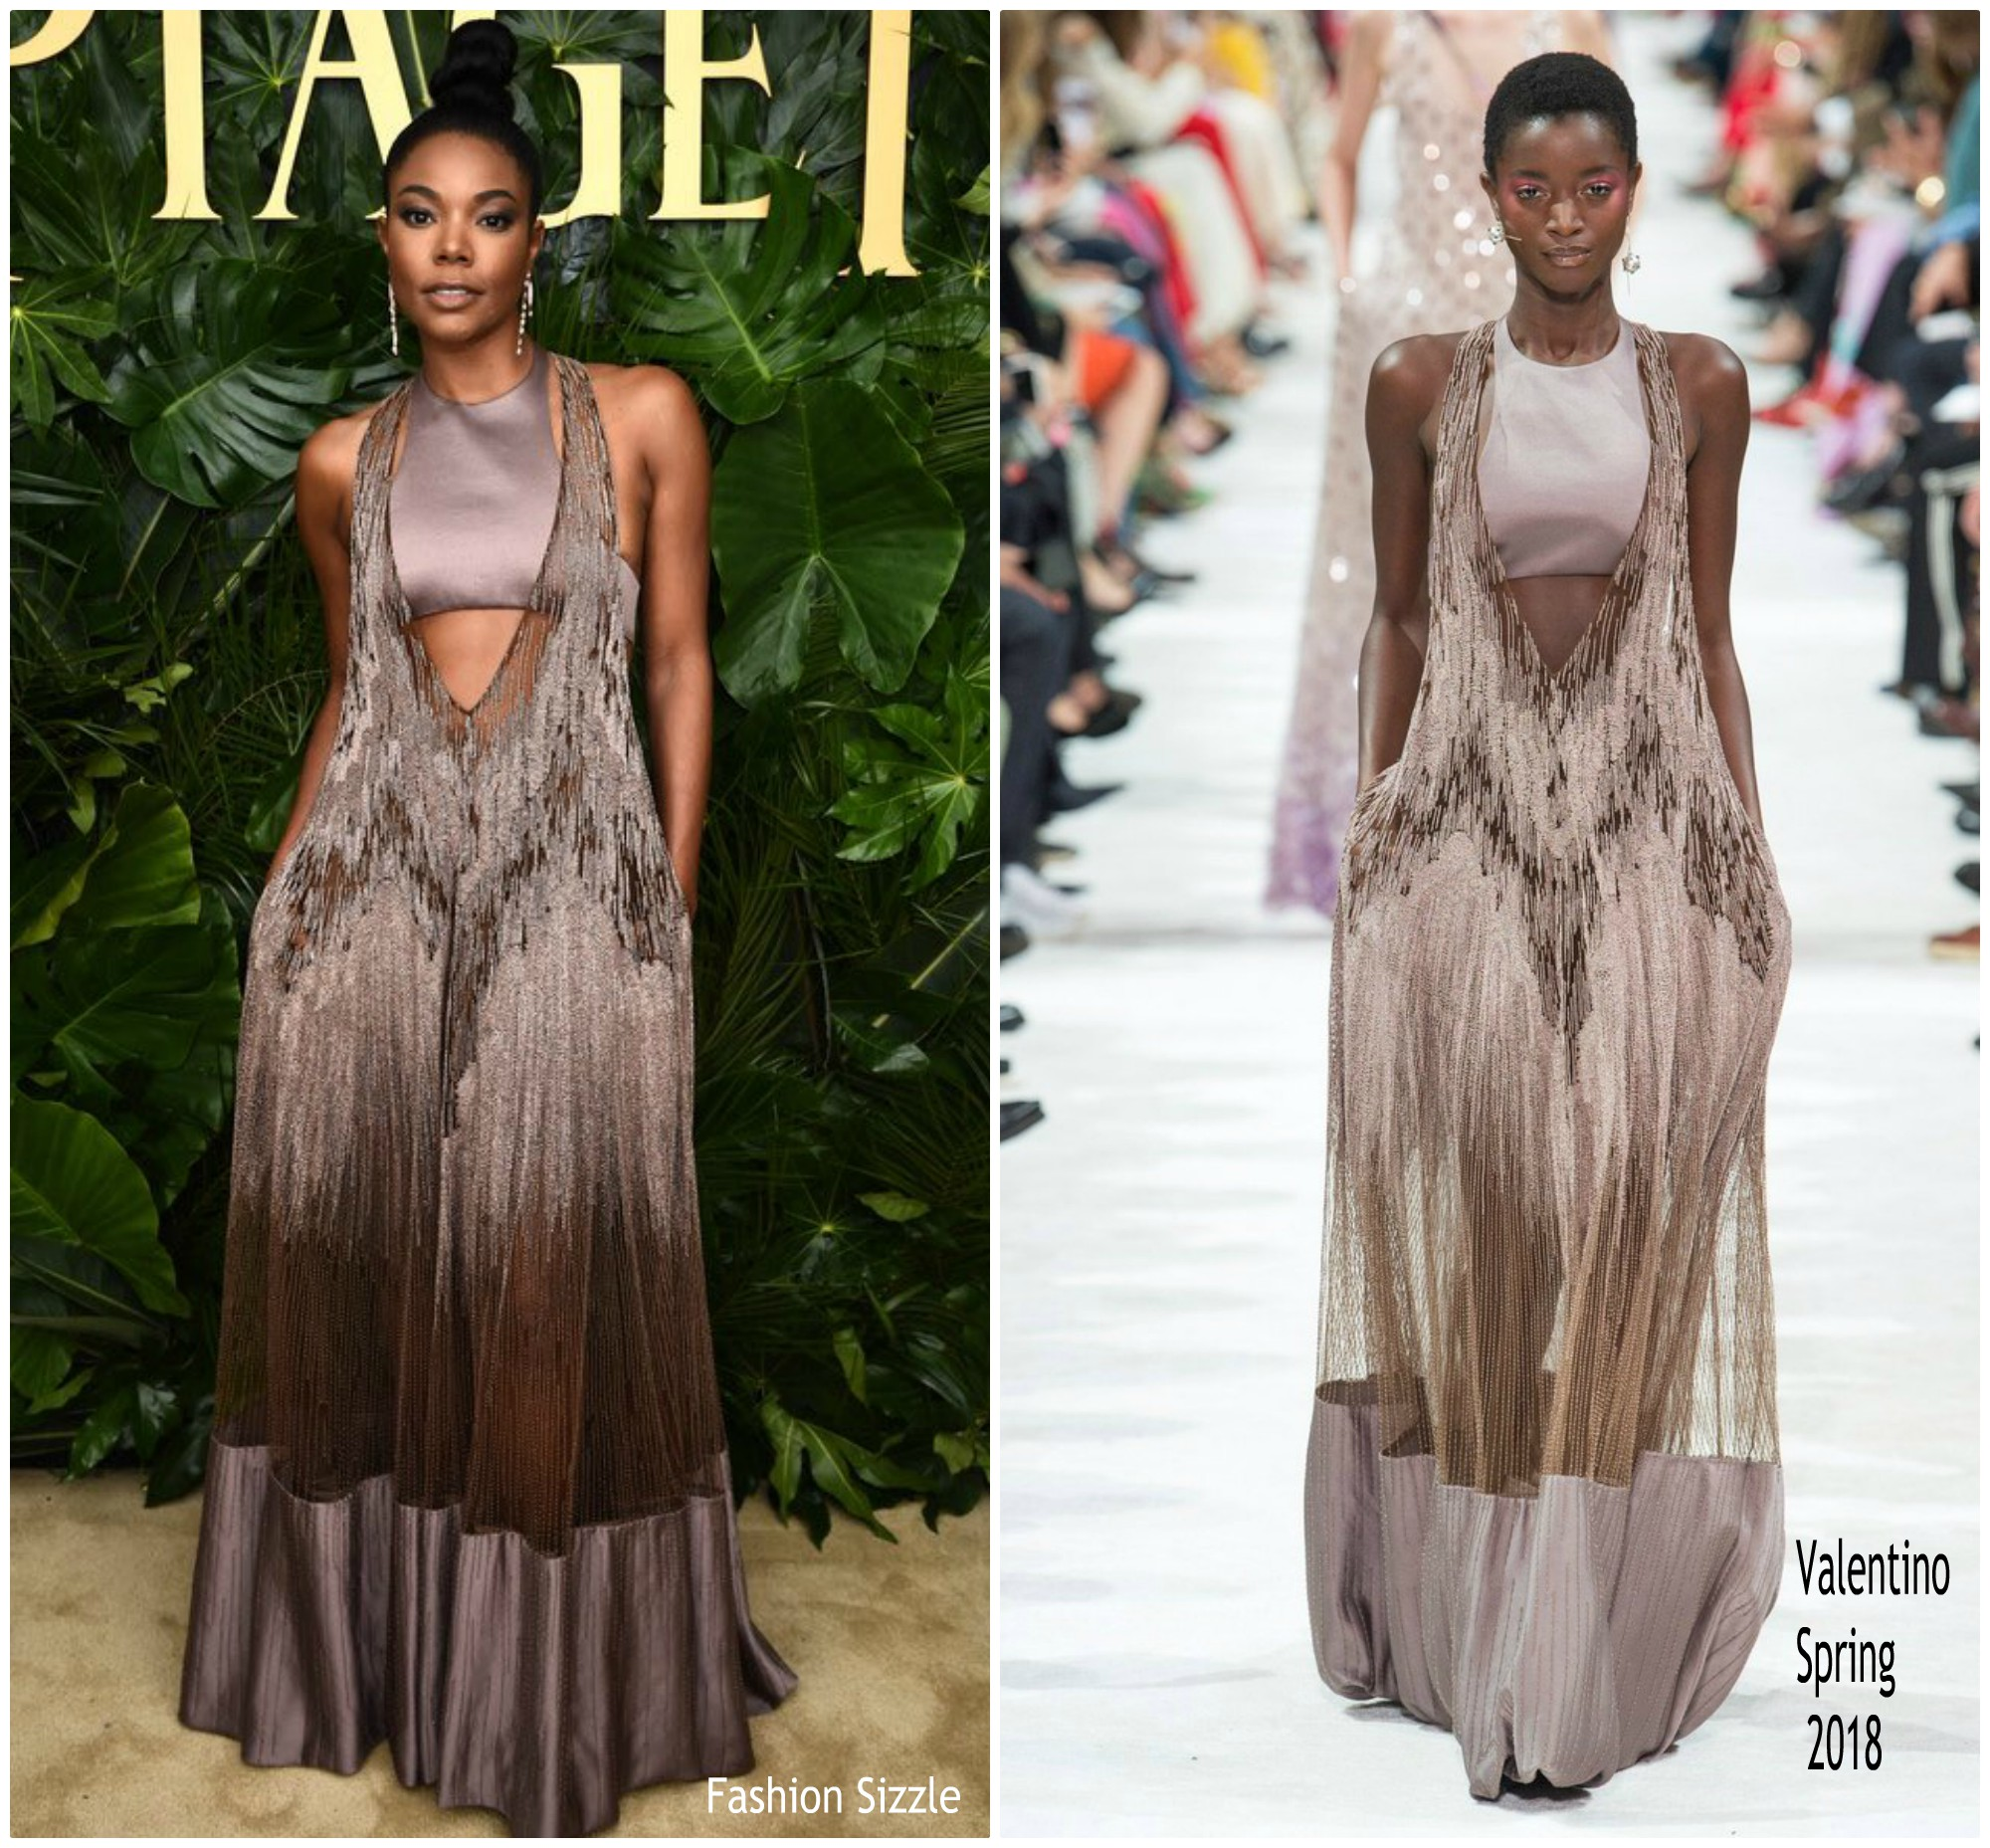 gabrielle-union-in-valentino-piaget-celebrates-independent-film-with-the-art-of-elysium